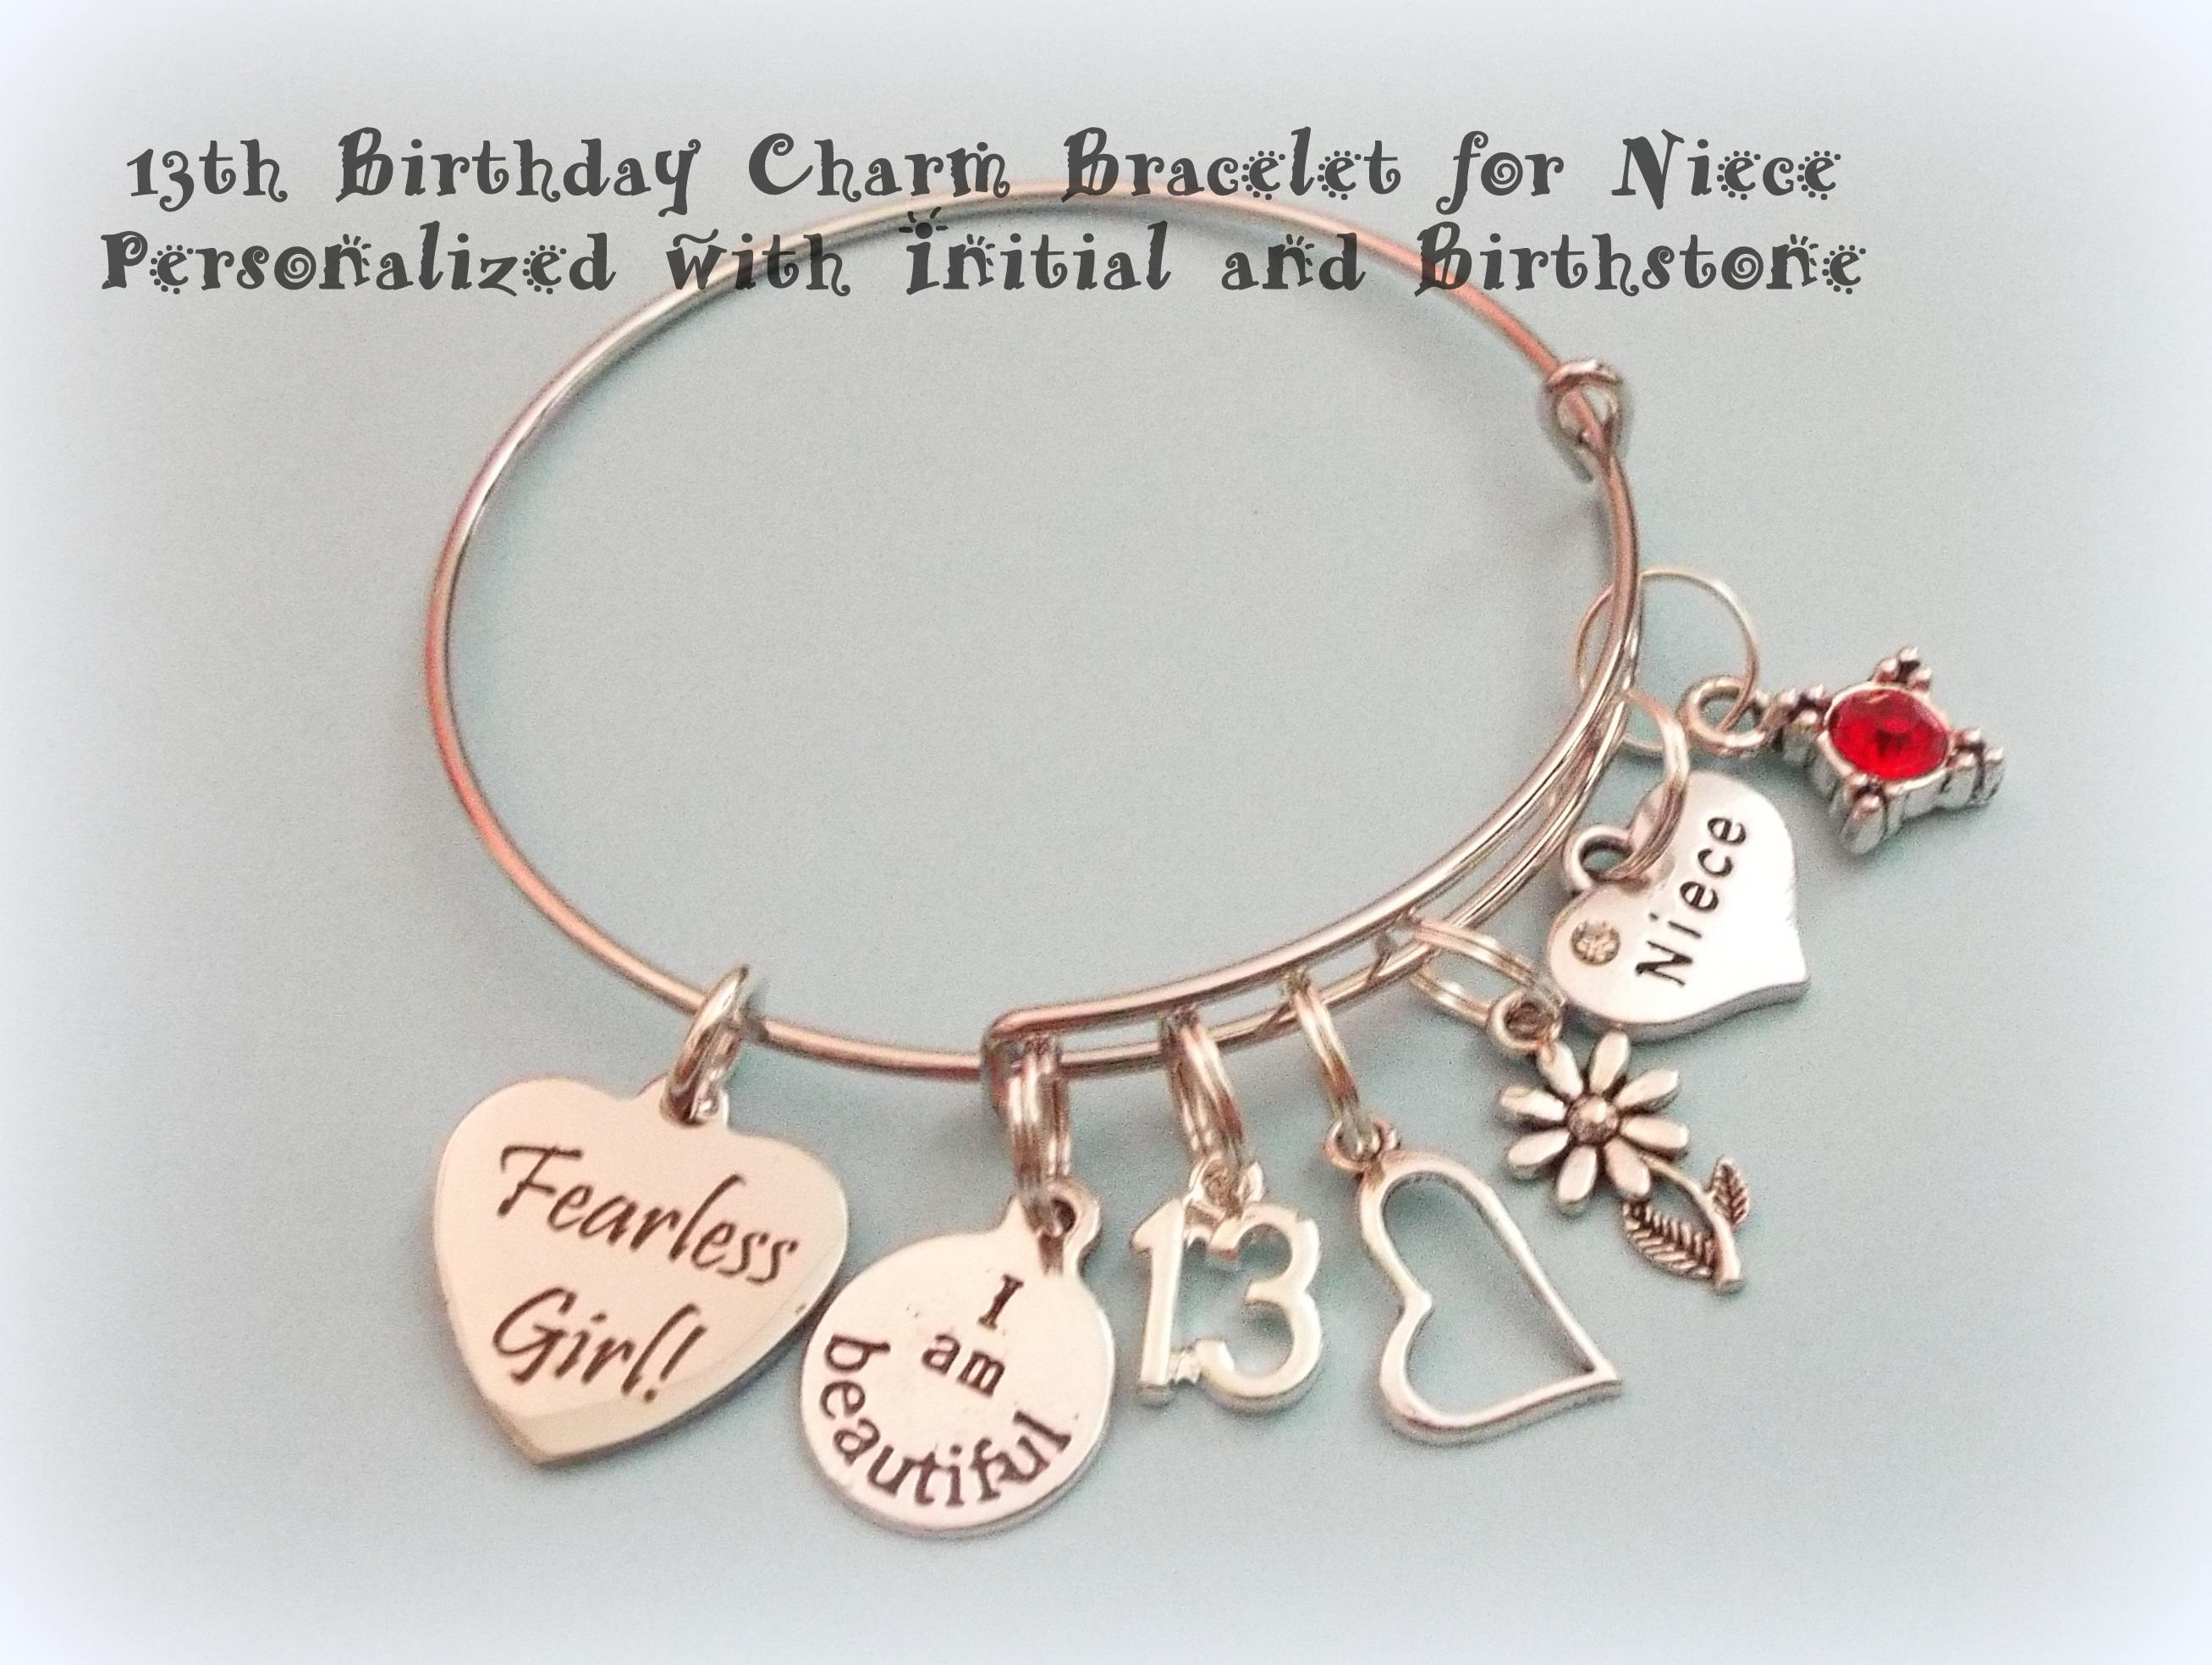 Niece Charm Bracelet Gift For Aunt To Personalized Inspirational Fearless Girl Jewelry